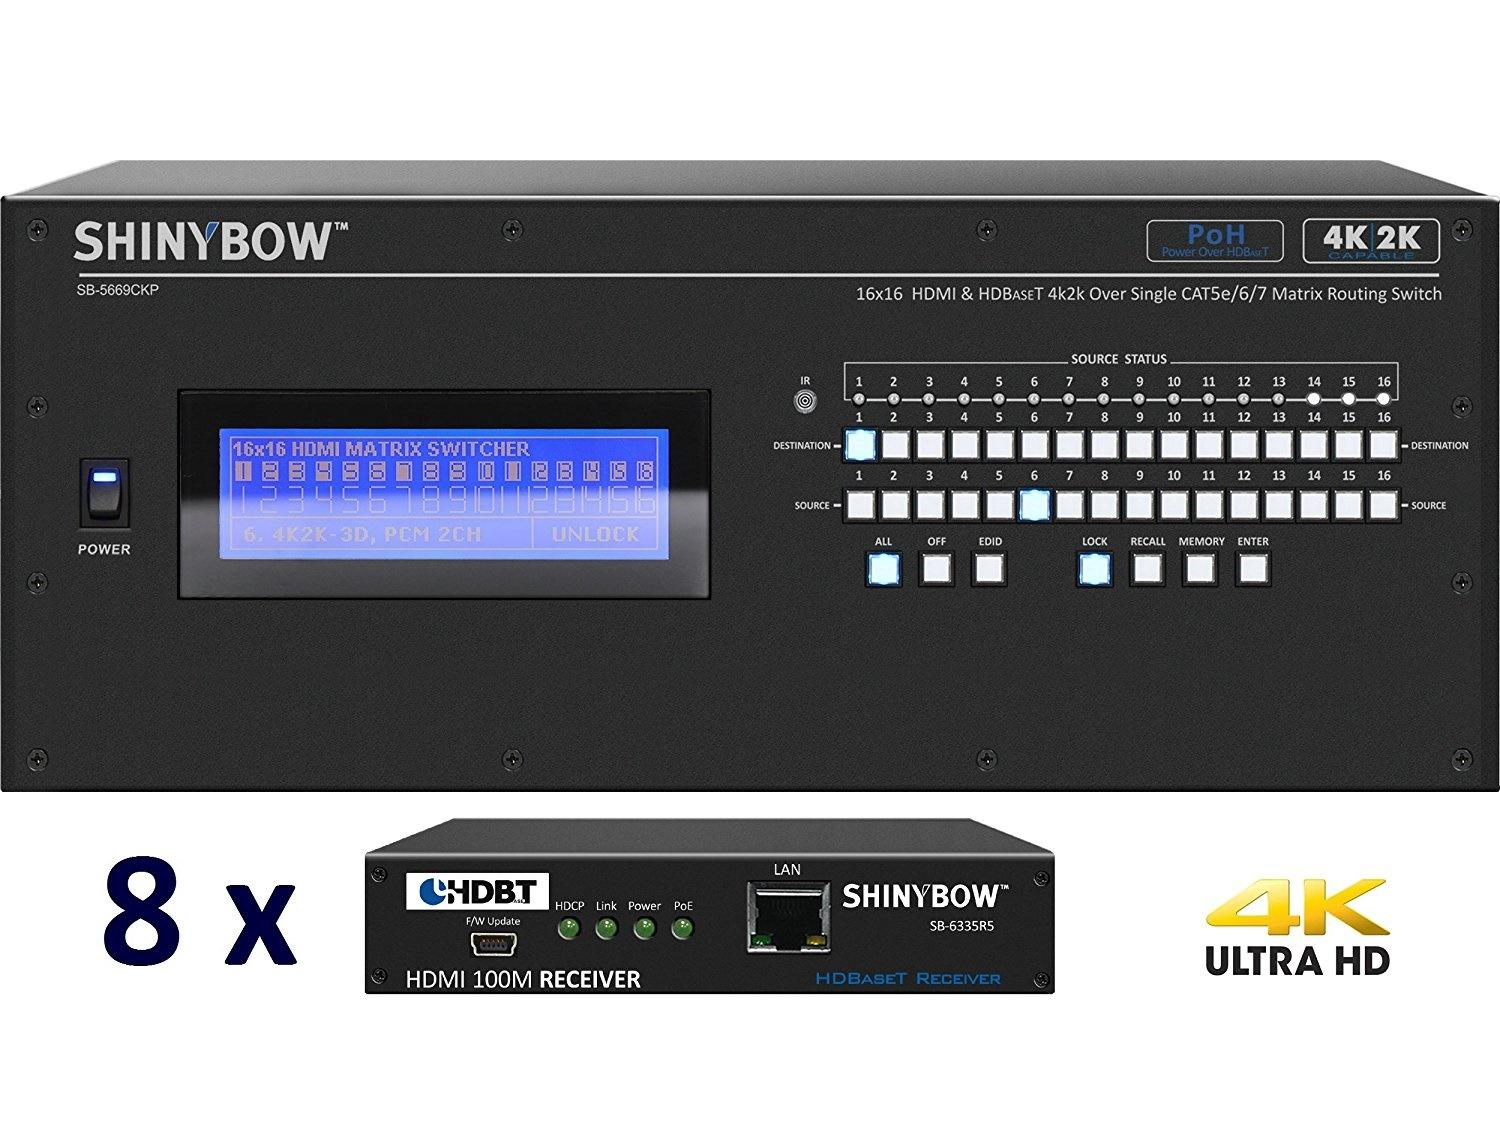 Shinybow SB-5669CKP-8x35R5-Kit 16x16 4K UHD HDBaseT PoH Matrix Switcher Kit/ SB-5669CKP Switch/8 x SB-6335R5 Receivers